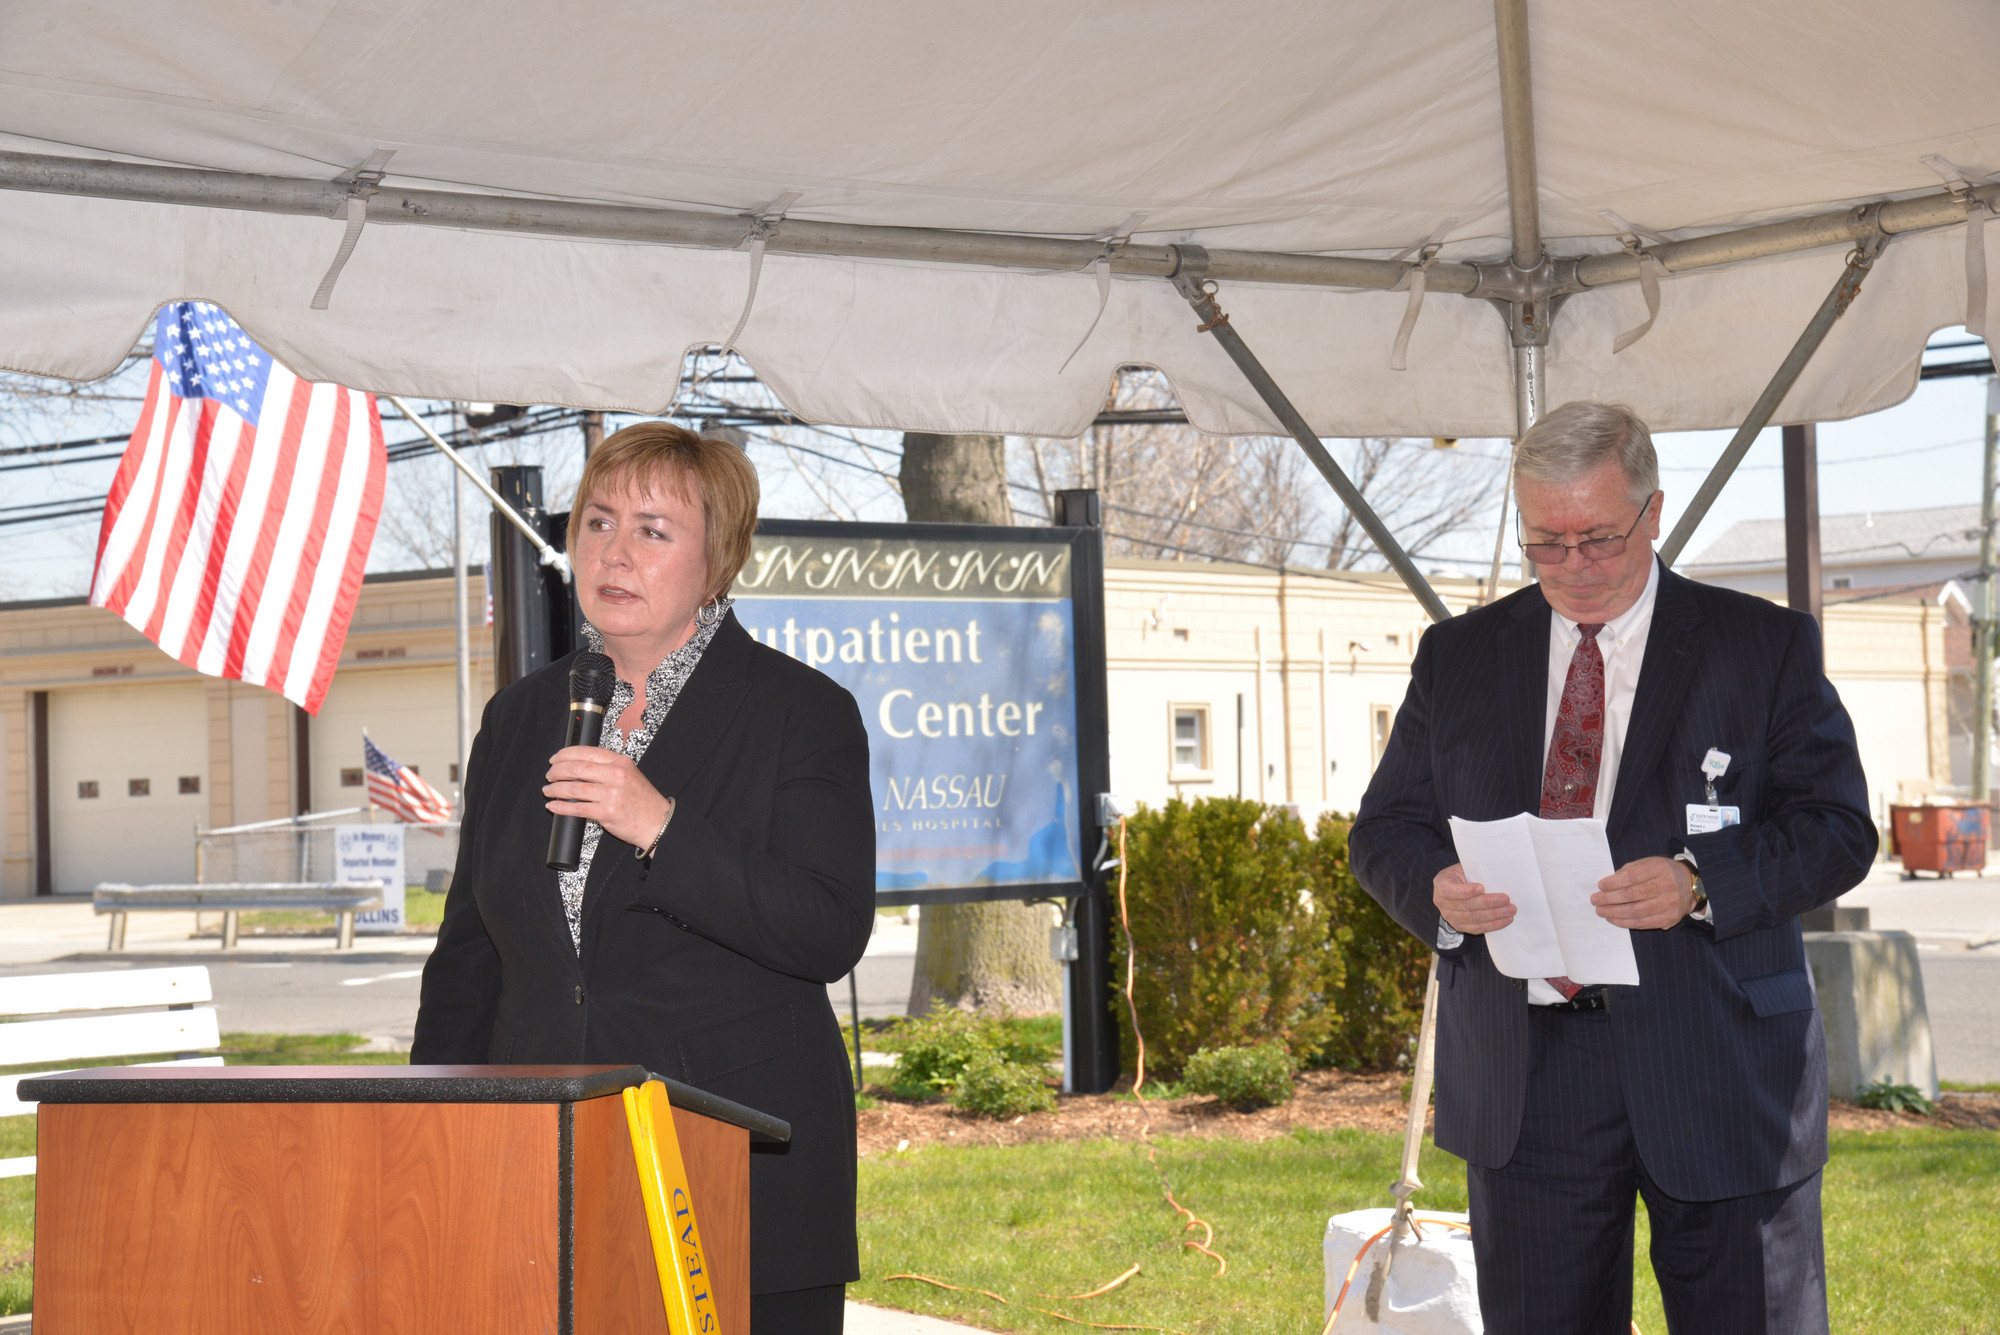 Town of Hempstead Supervisor Kate Murray spoke at the ribbon-cutting. At right was Richard Murphy, the hospital's CEO.